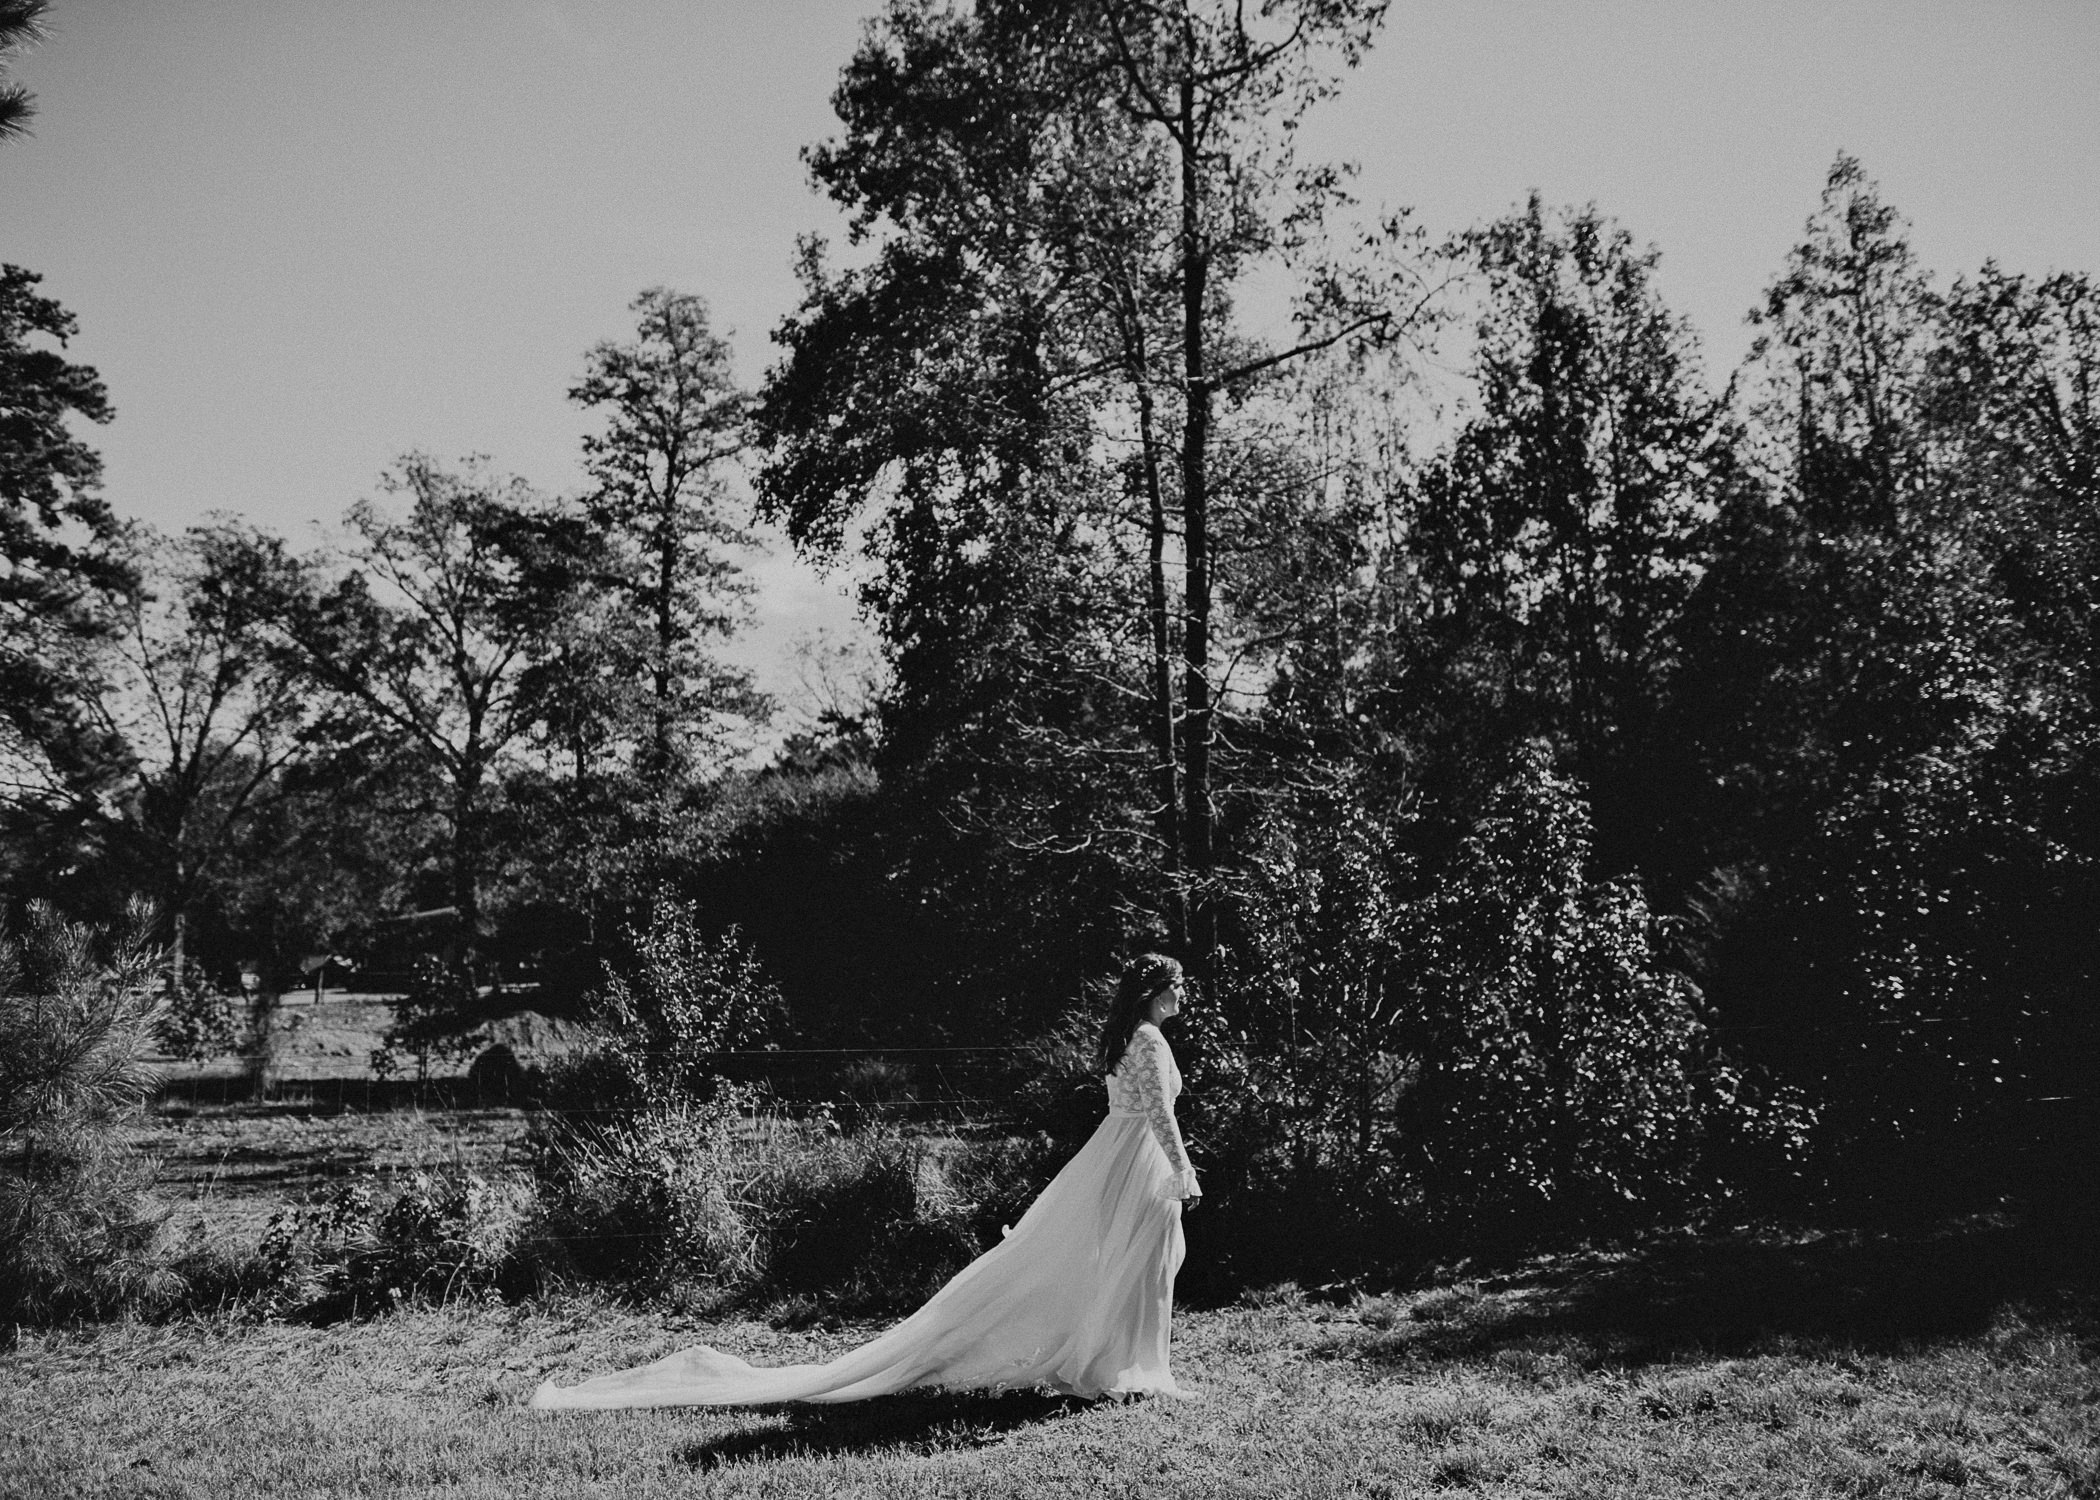 35 - Wedding first look : Atlanta wedding photographer .jpg